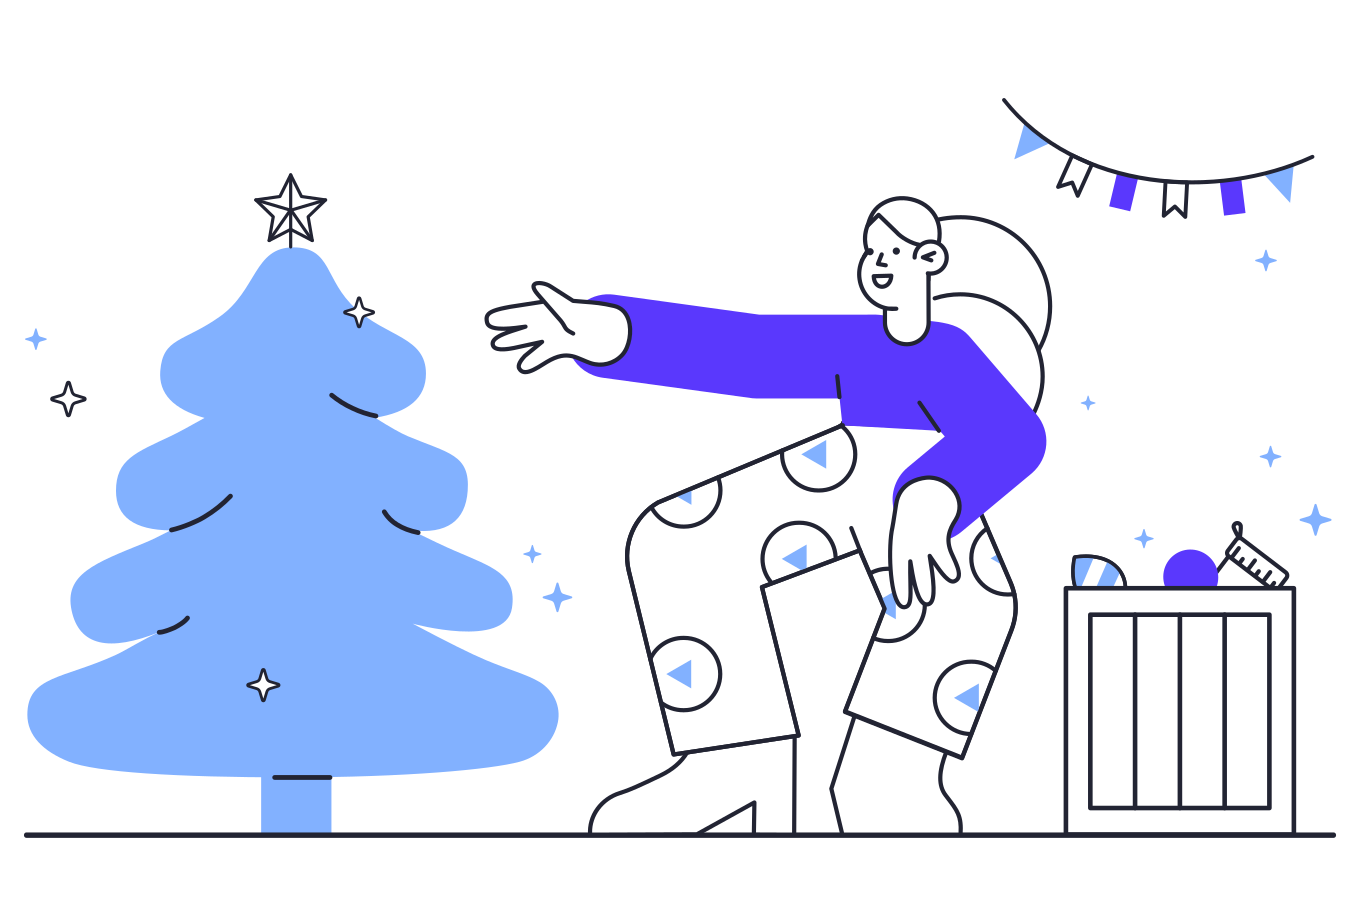 Prepairing for Christmas Clipart illustration in PNG, SVG